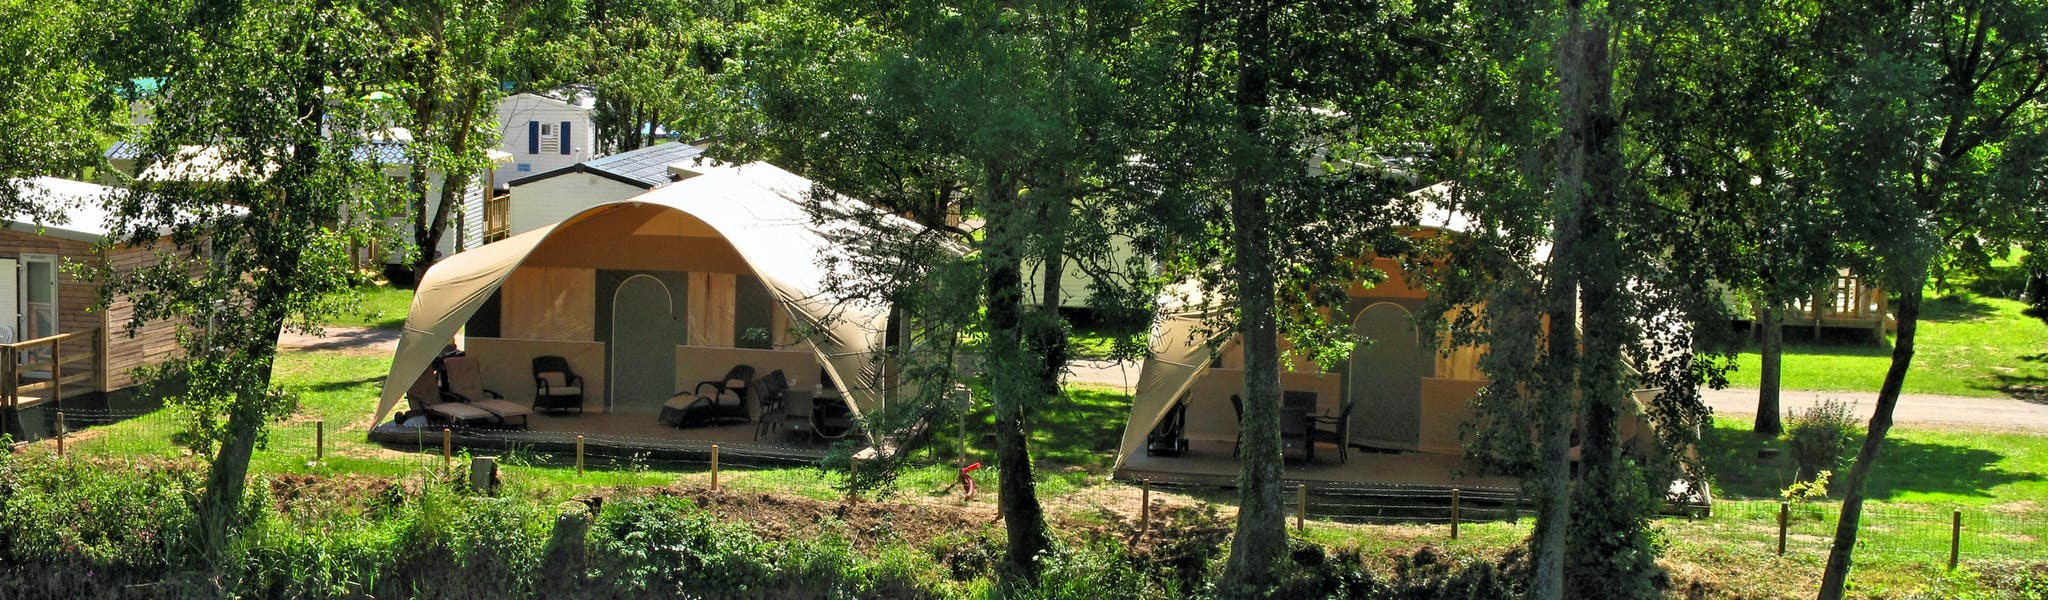 Grand Lodgetent camping Val de Bonnal plaats